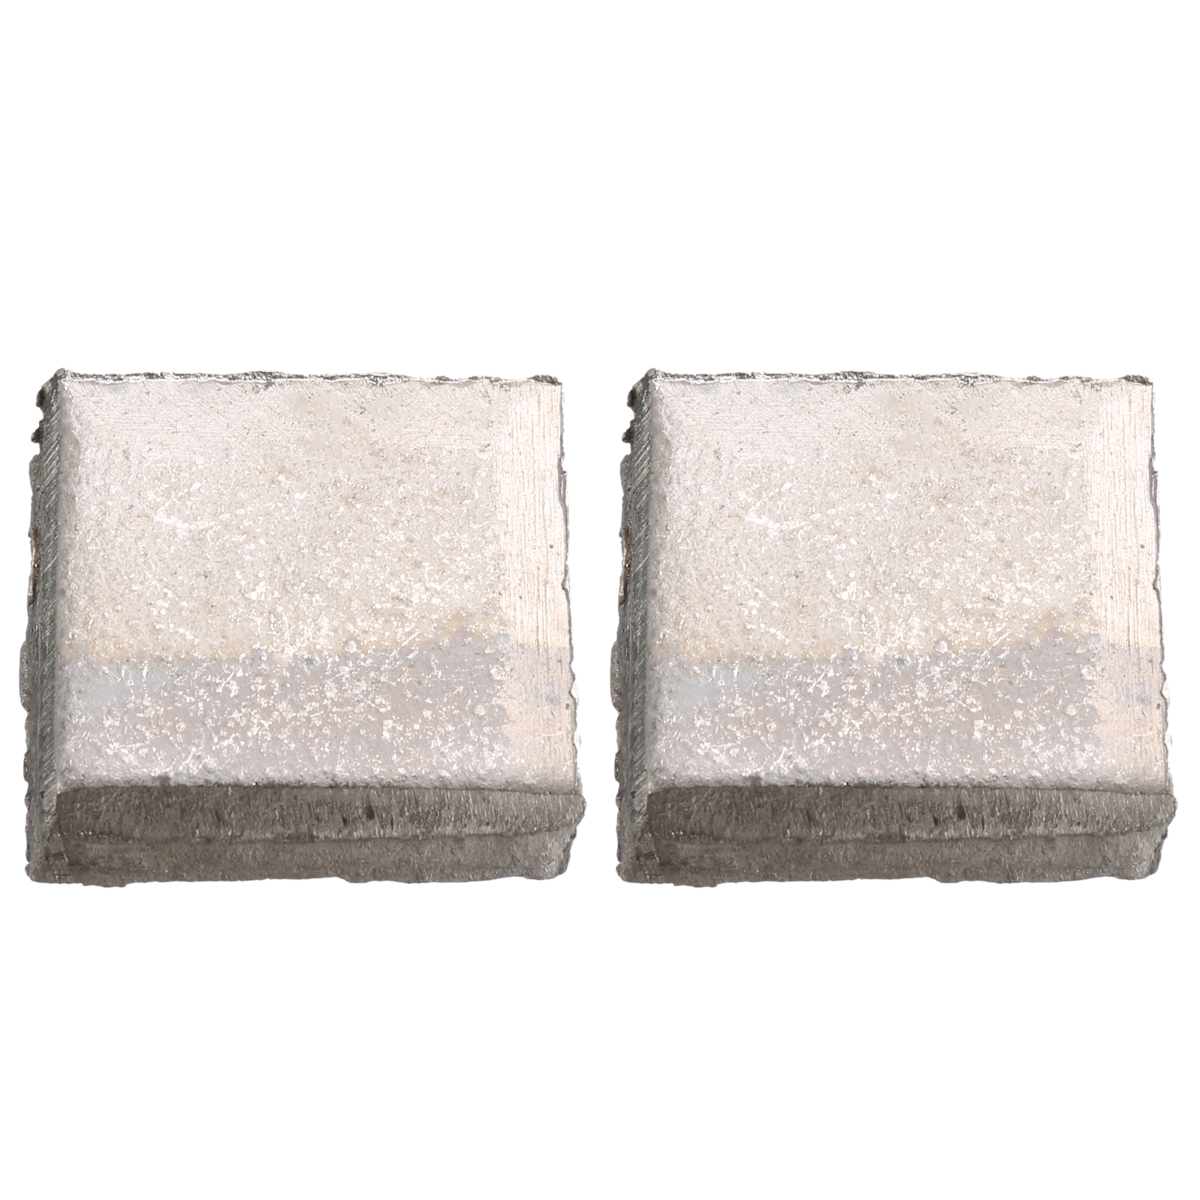 100g 99.99% Pure Ni Metal Anti-corrosion Plate High Purity Nickel Ingot Sheet For Electroplating And Catalyst Production